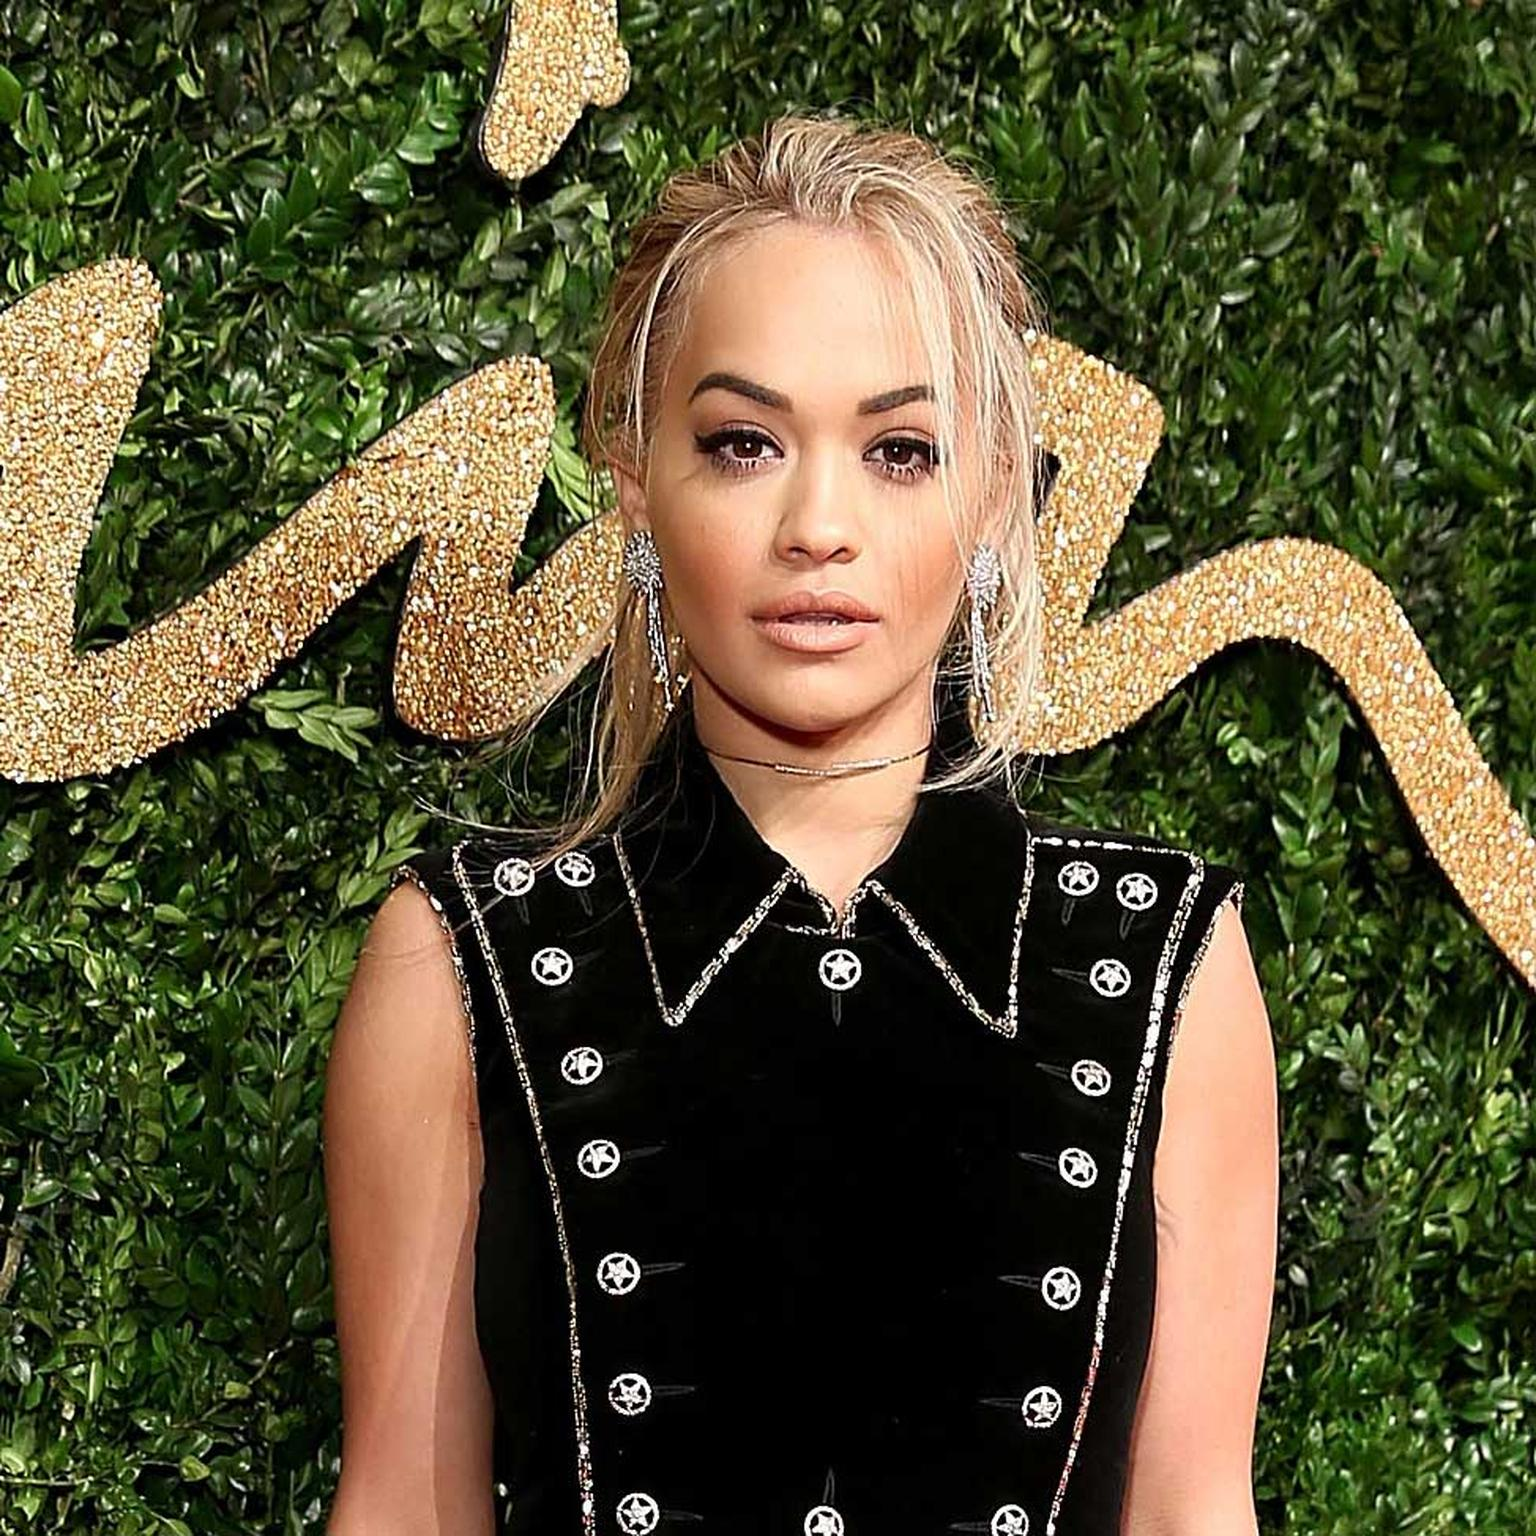 Rita Ora at the British Fashion Awards in Chanel diamond jewellery